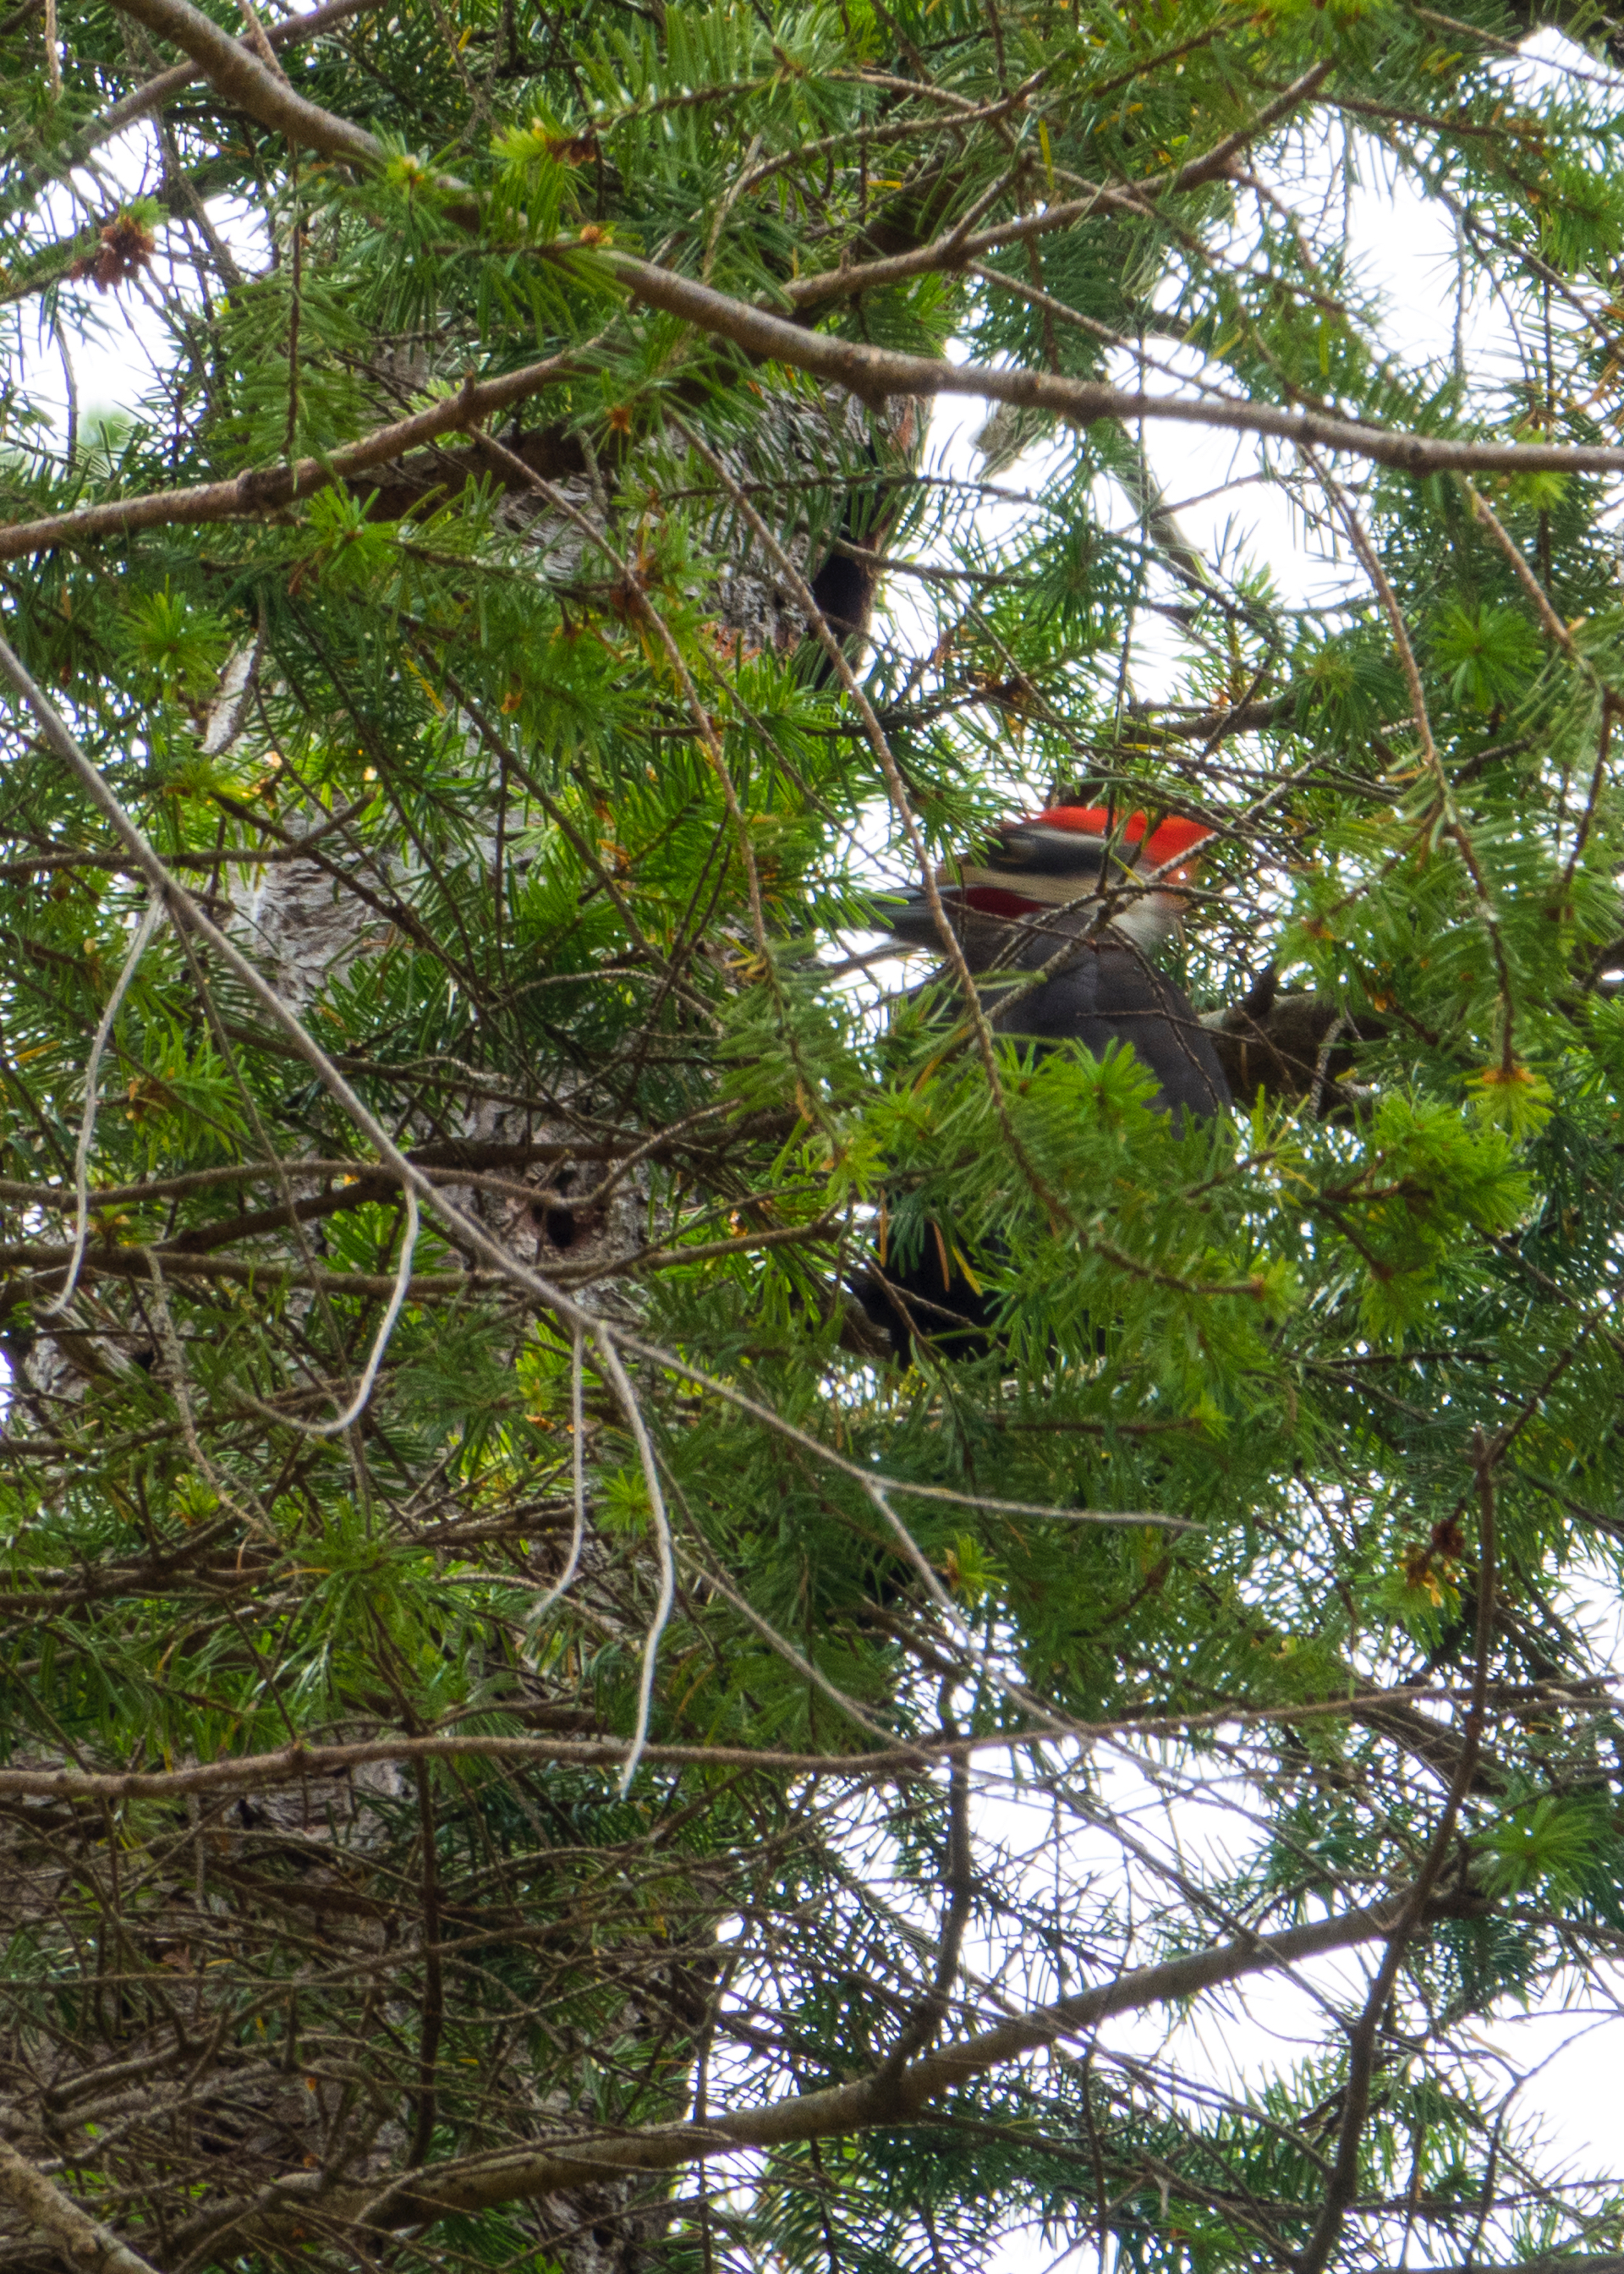 Our unique find this time was a pileated woodpecker.